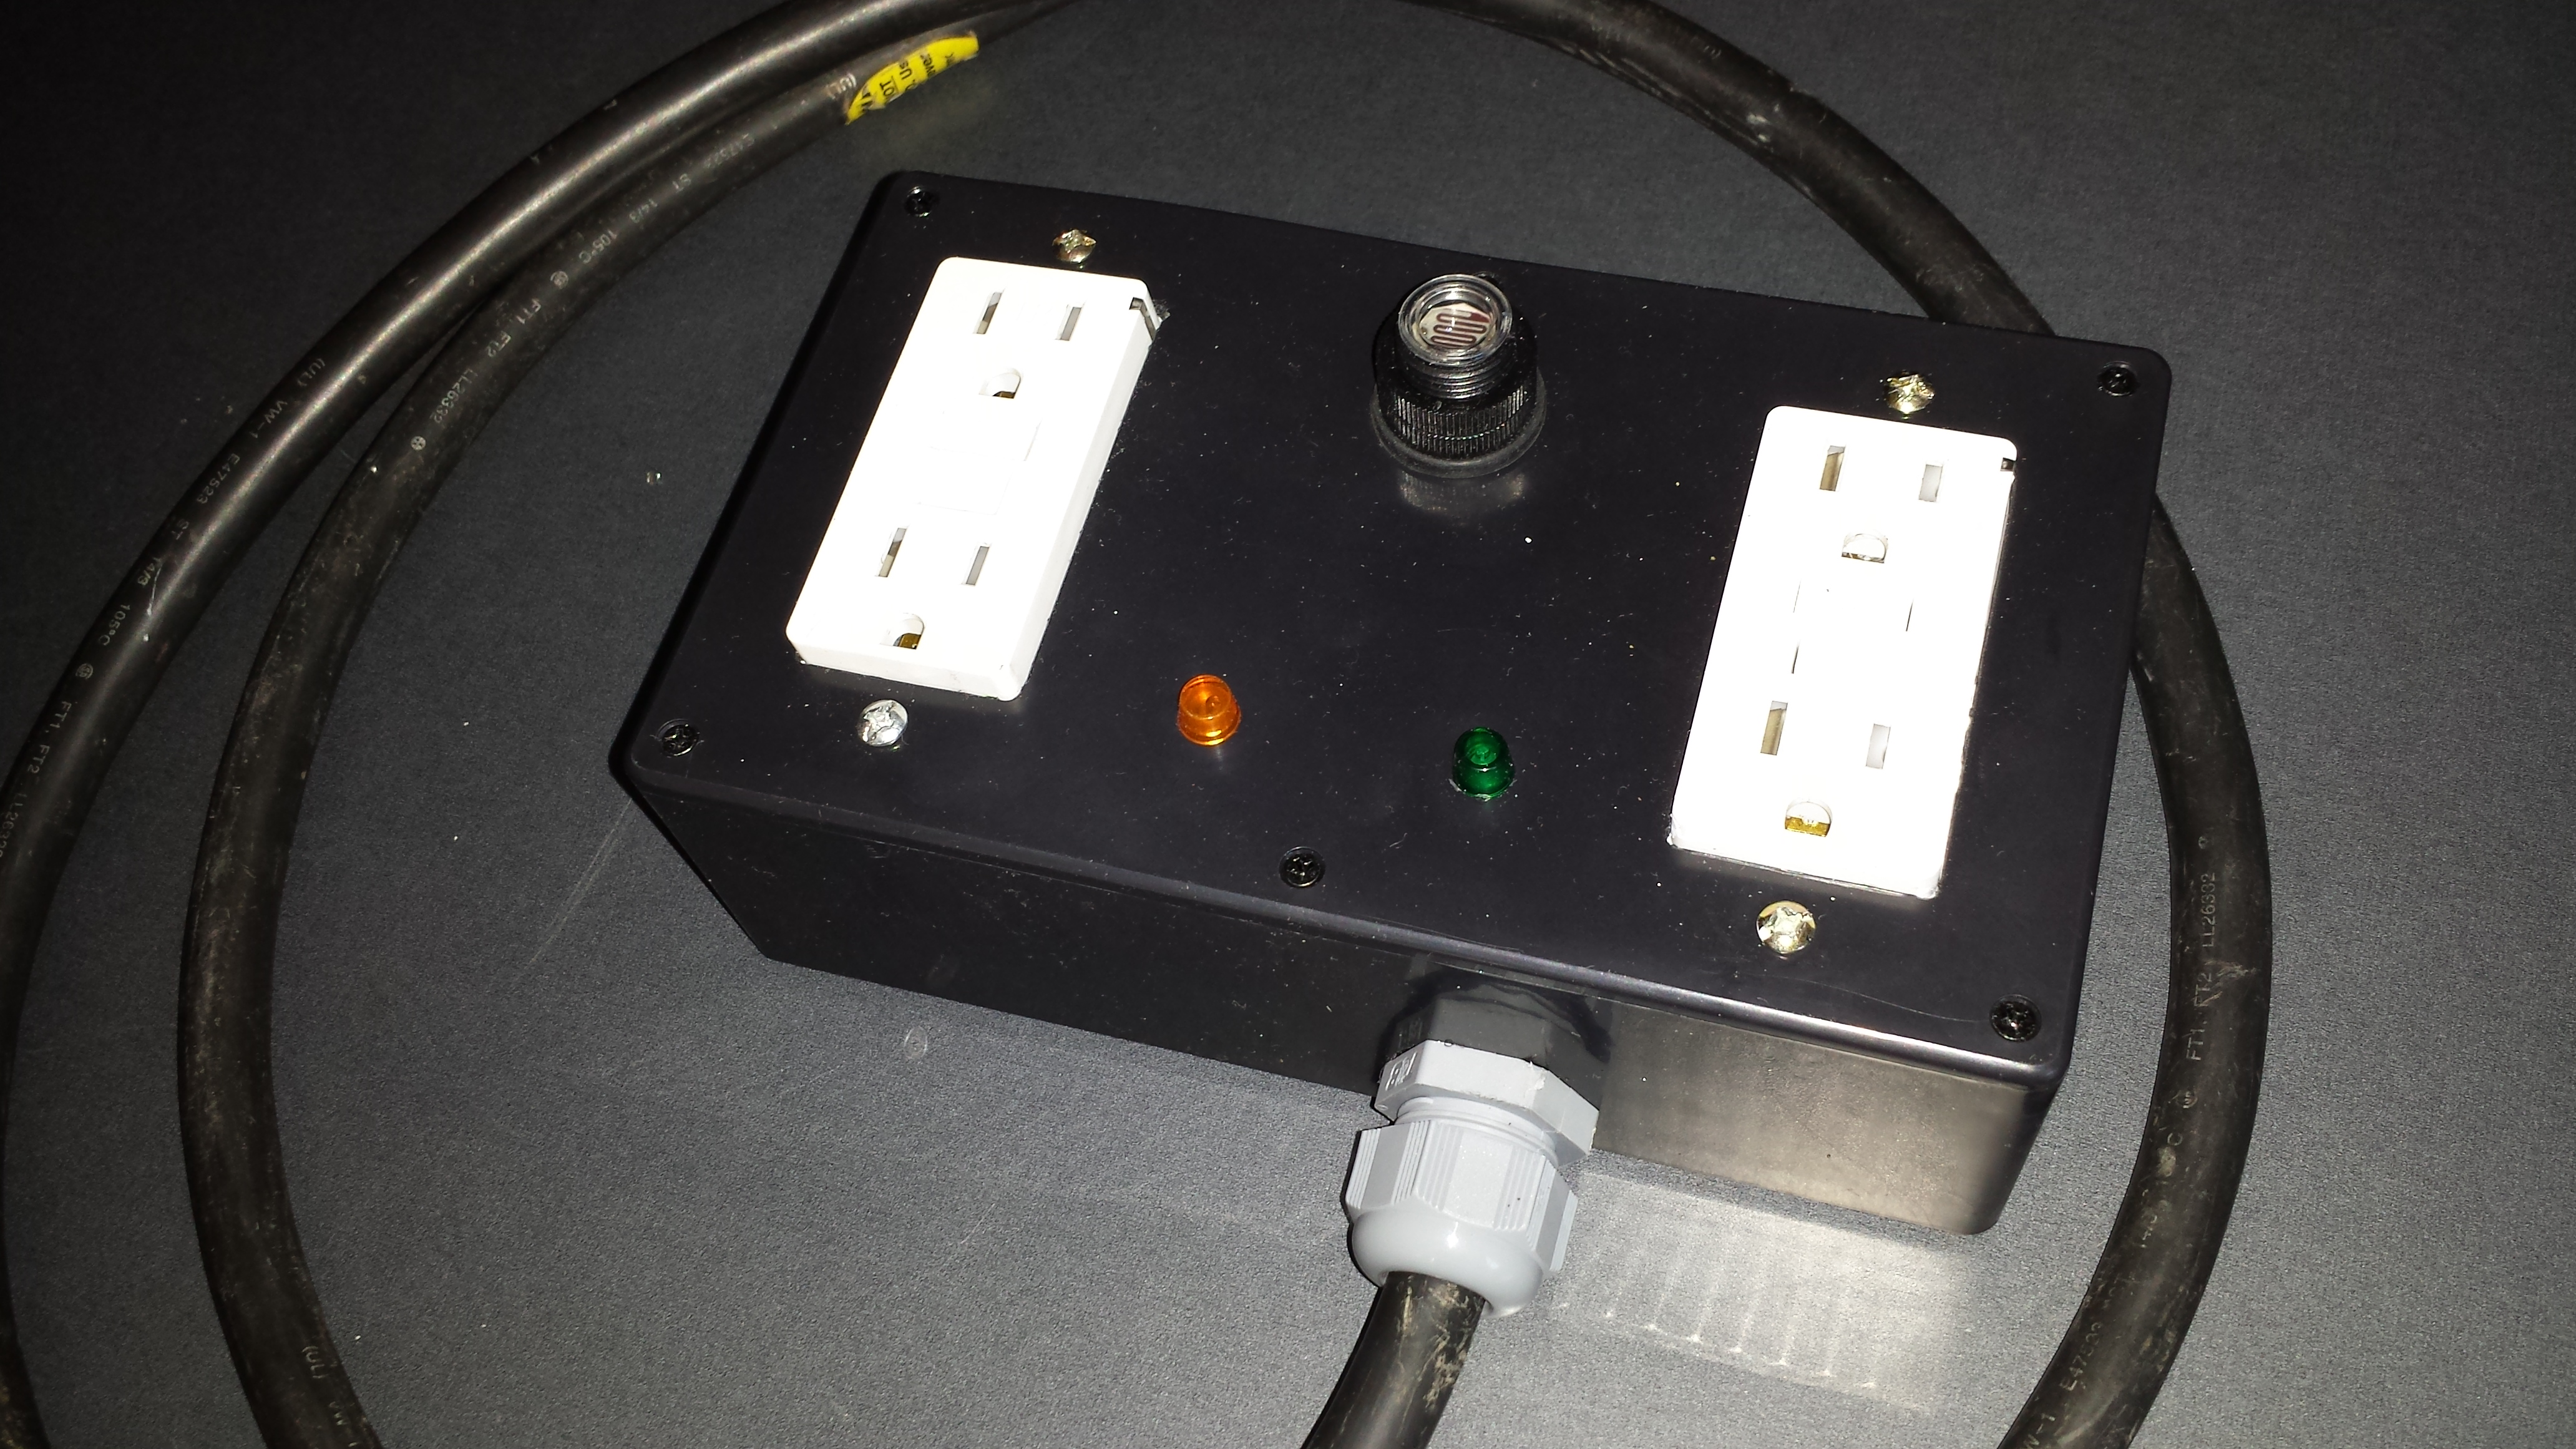 medium resolution of photo sensor controlled outlet turns on or off at daylight or nightime